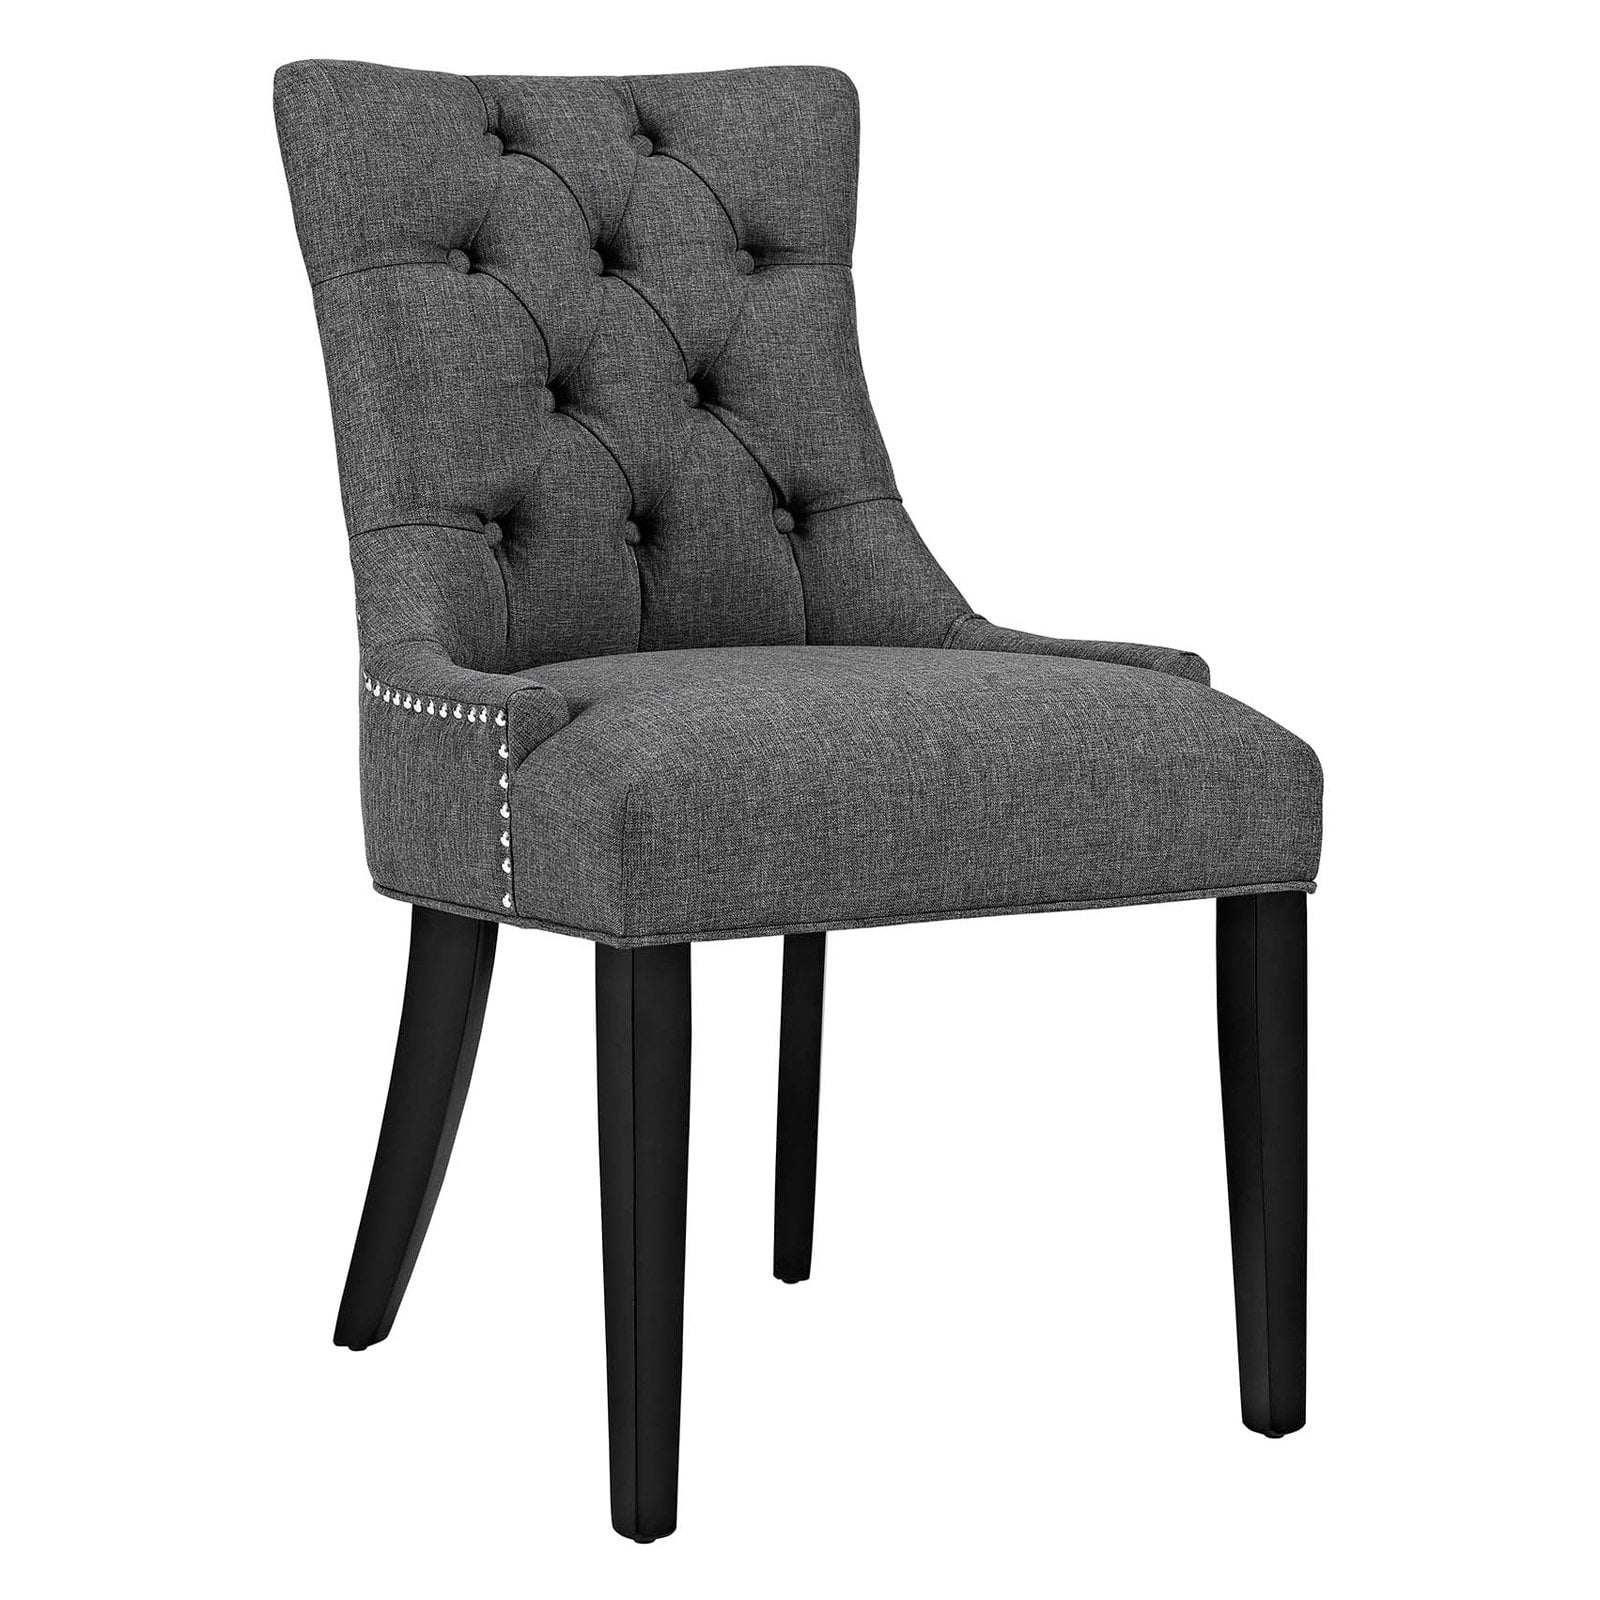 gray upholstered dining chairs doll high chair and accessories modway regent multiple colors walmart com